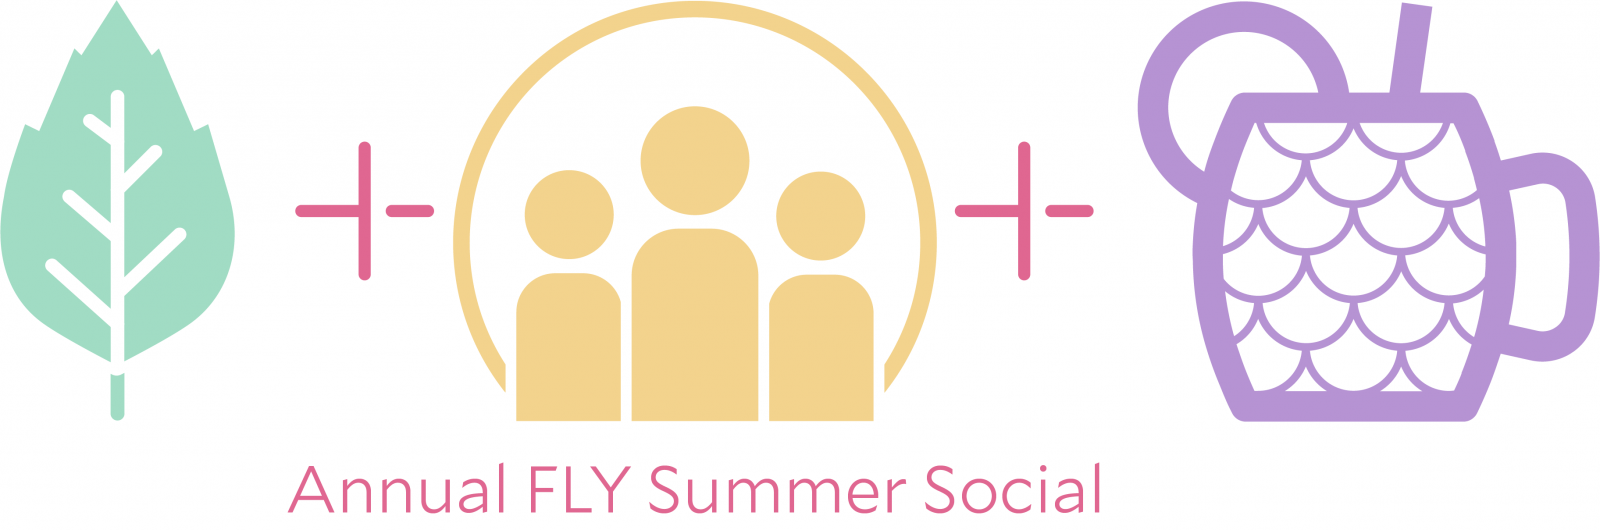 """Annual FLY Summer Social"" logo with three icons: 1) Elm Leaf, 2) A group of three people, 3) a Drink with a straw"